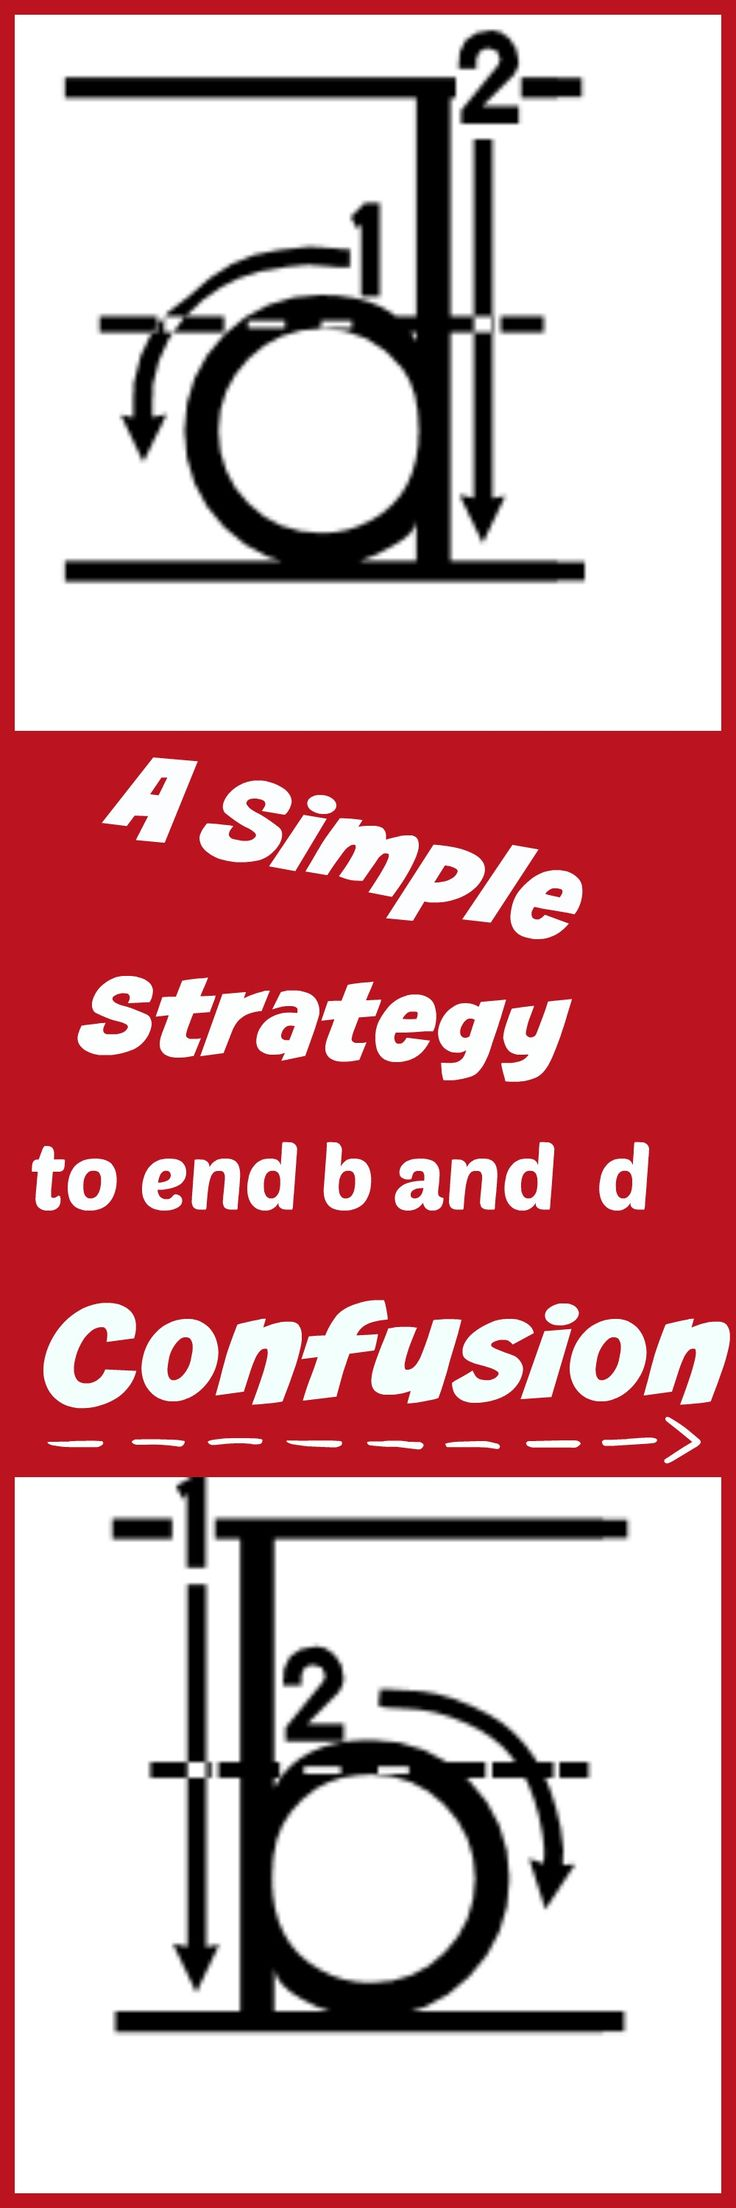 b and d confusion and letter reversal is common in kindergarden and first grade. Dyslexic students also struggle with this skill. This simple strategy is research based and easy to implement.